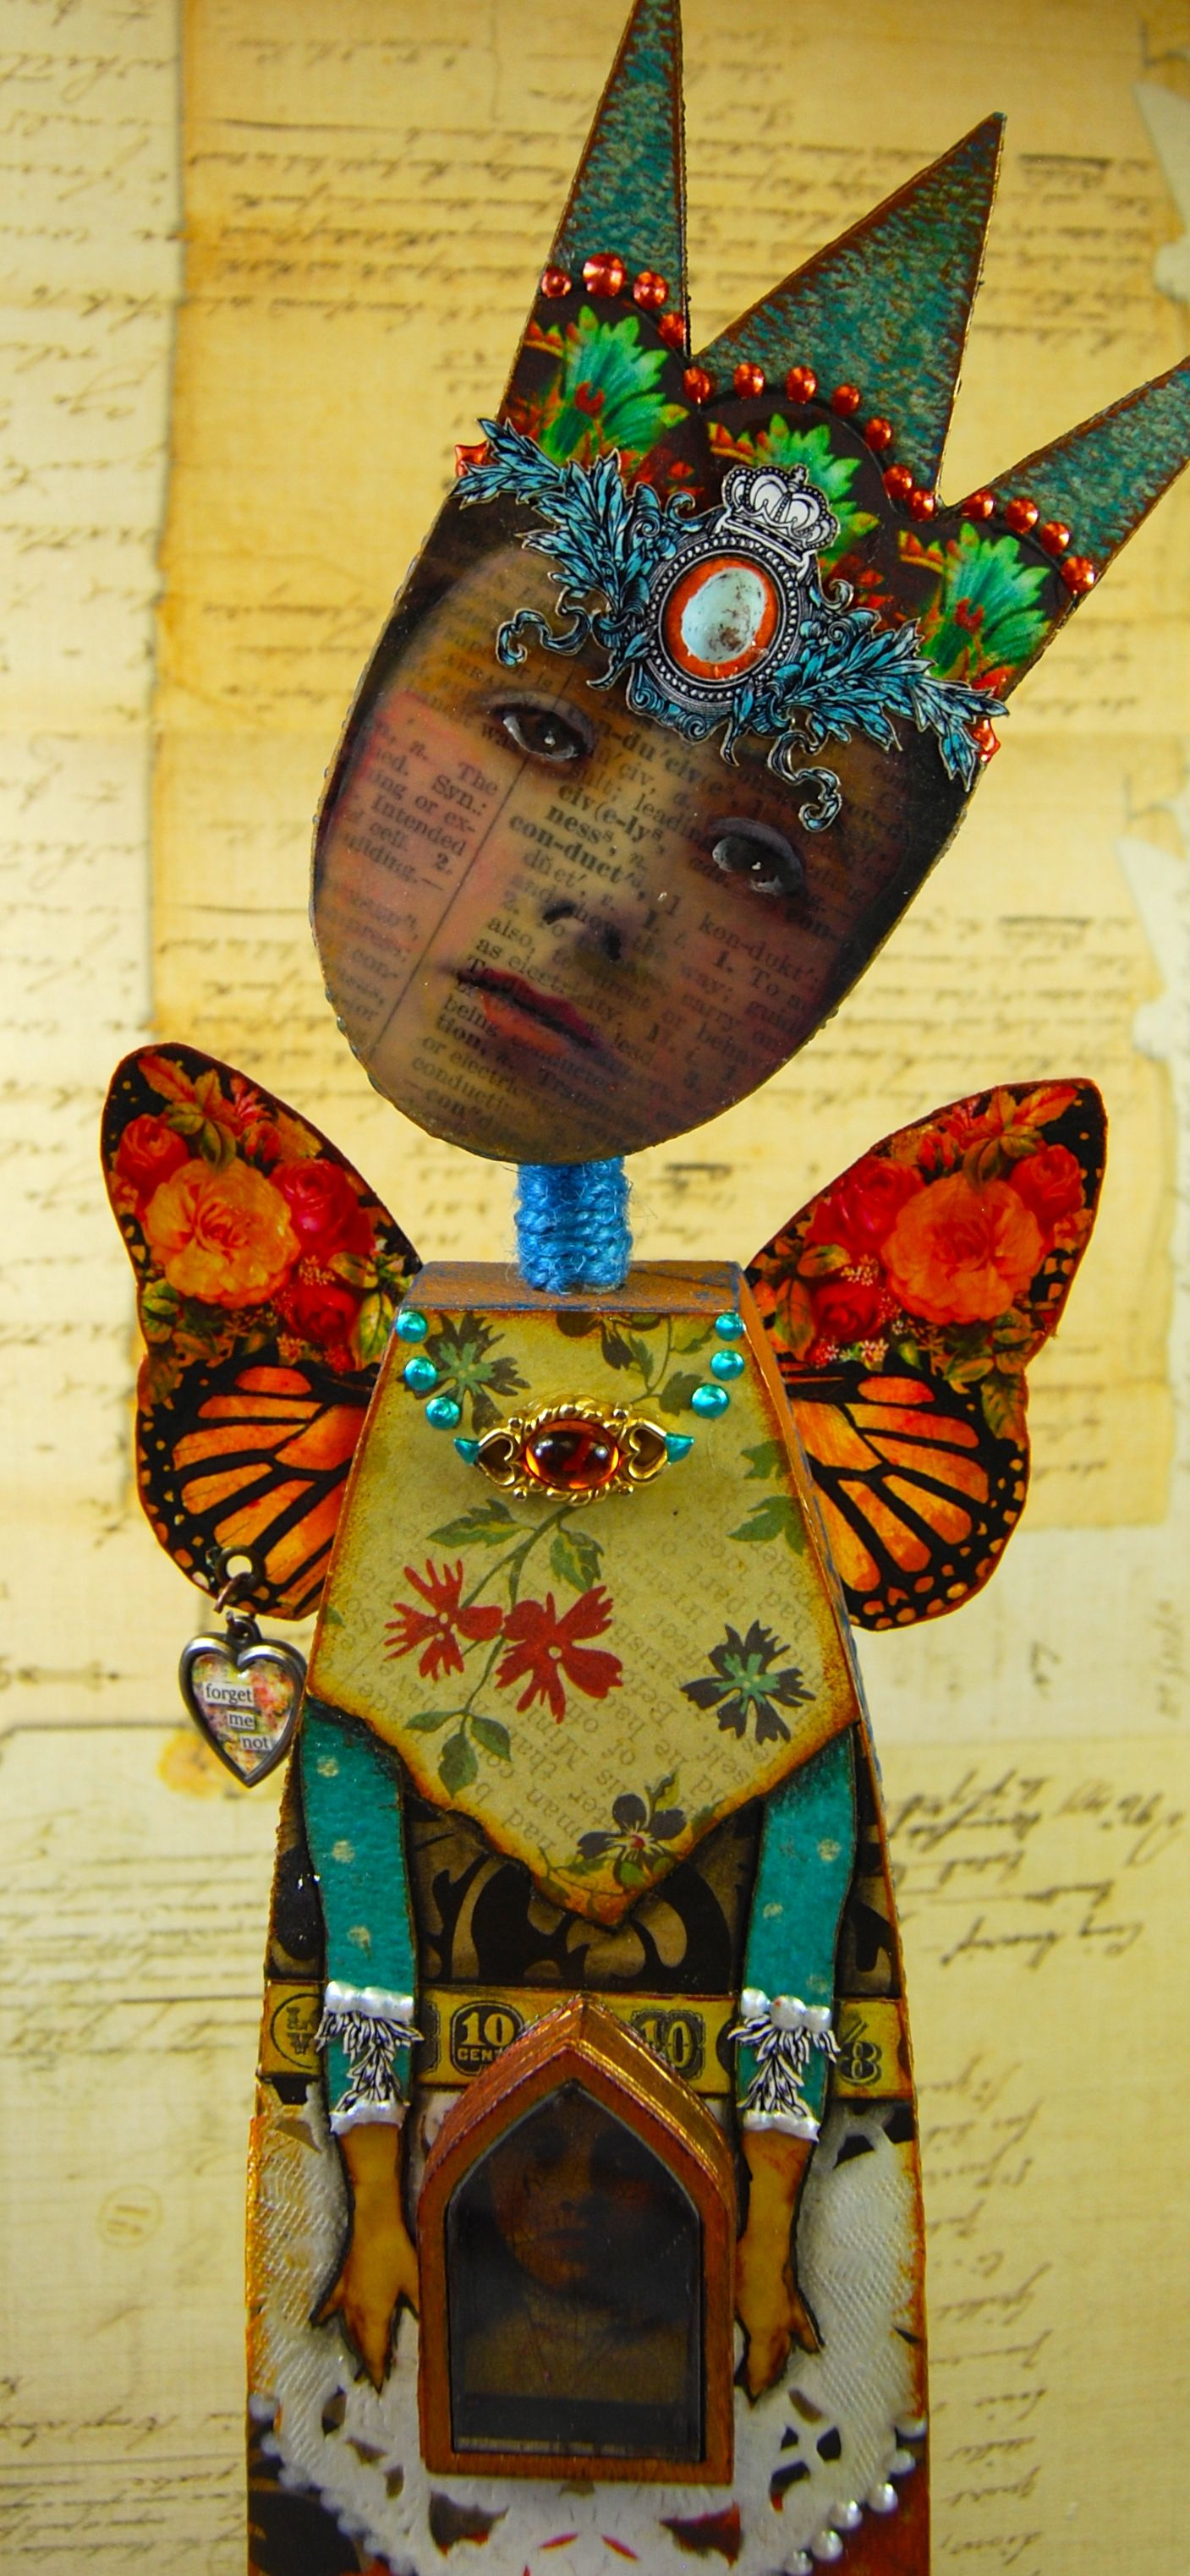 Imaginarium-Anthology of an Art Doll...an online class with MJ Chadbourne this summer on artfulgathering.com....this class is going to be so much fun!